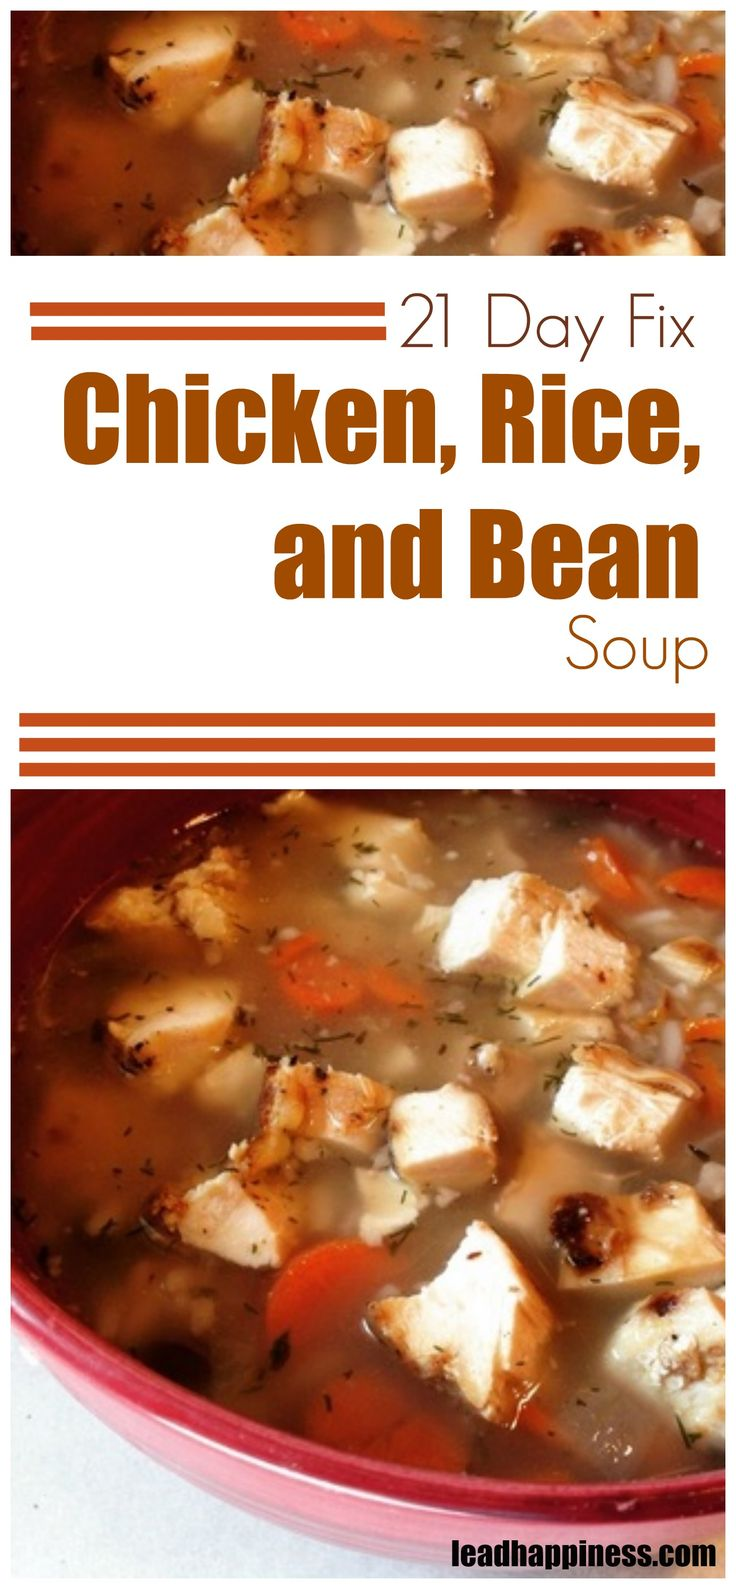 21 Day Fix Chicken, Rice, and Bean Soup #21dayfixsoup #21dayfix #21dayfixrecipes #21dayfixsouprecipe #cleaneating #cleaneatingsoup